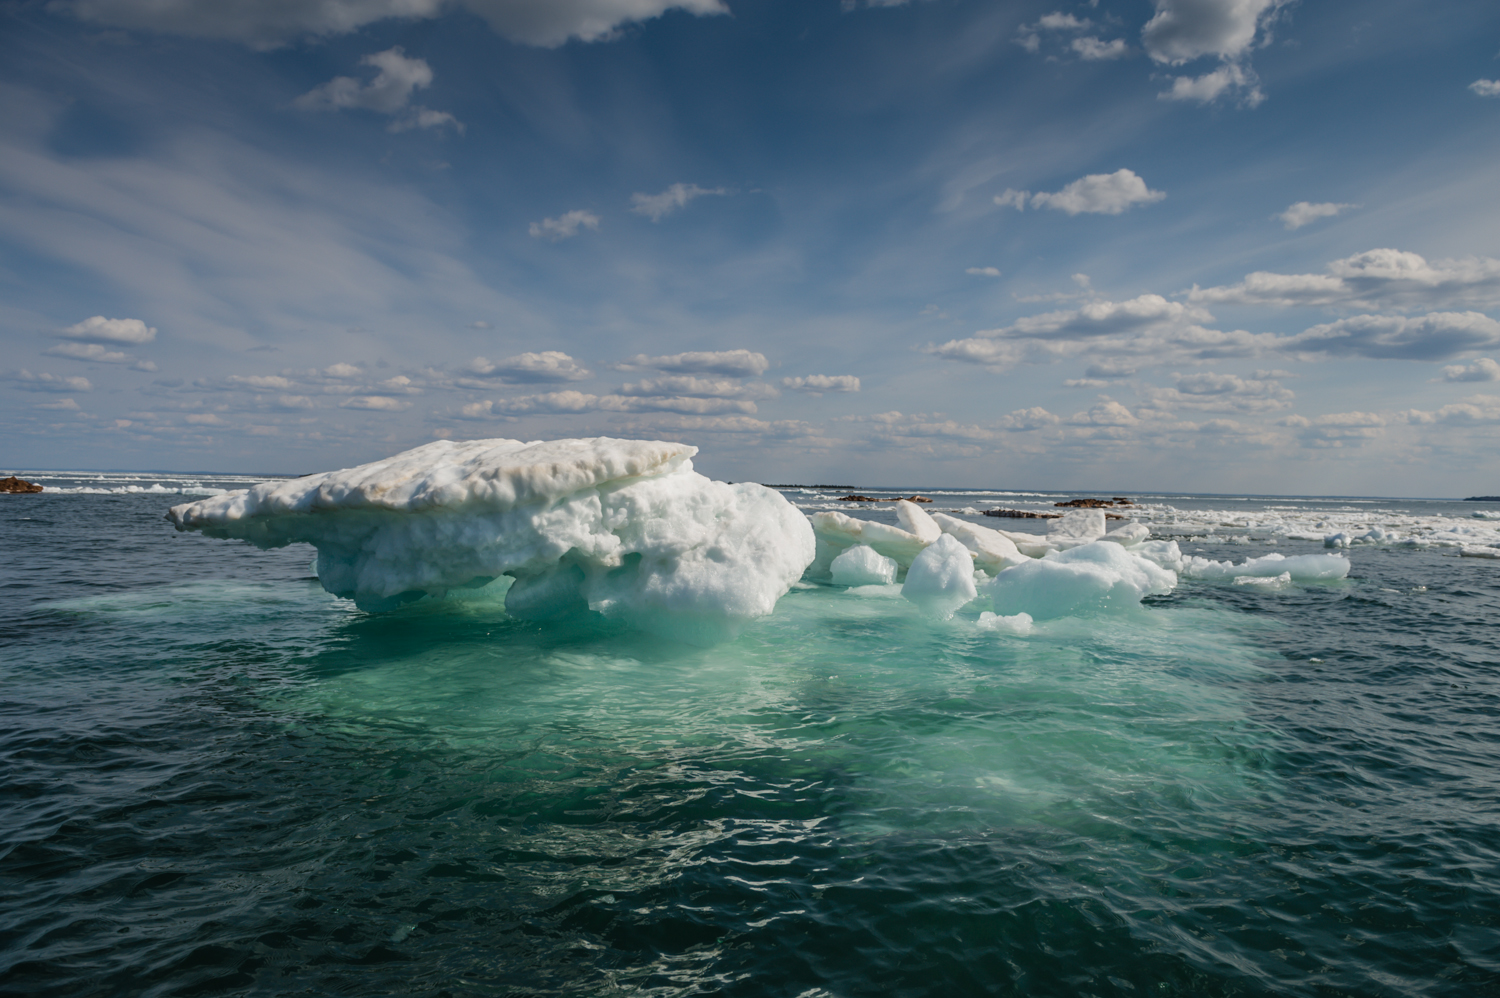 Icebergs in Lake Superior, late May 2014 (photo by Mary Dougherty)